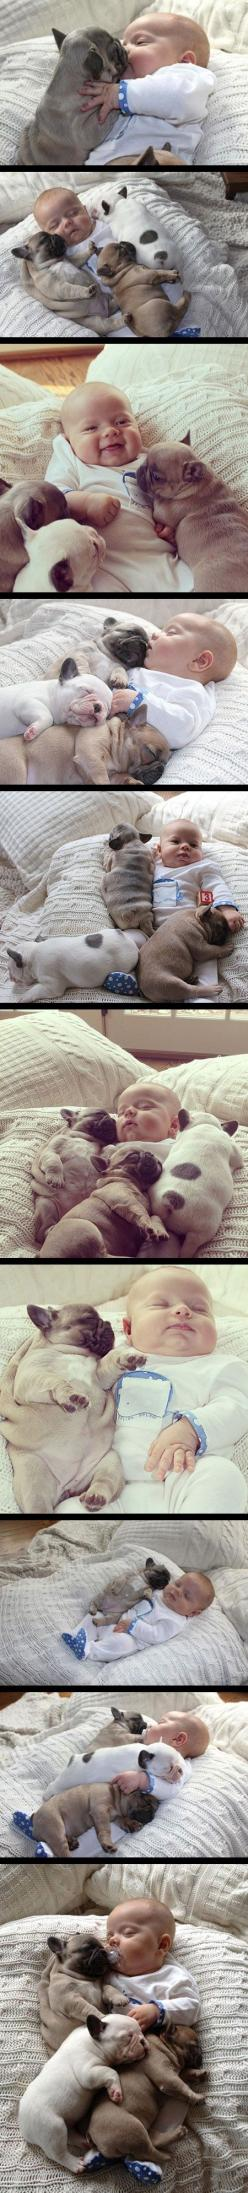 Cutest: Cuteness Overload, French Bulldogs, My Heart, Puppy, Baby, Animal